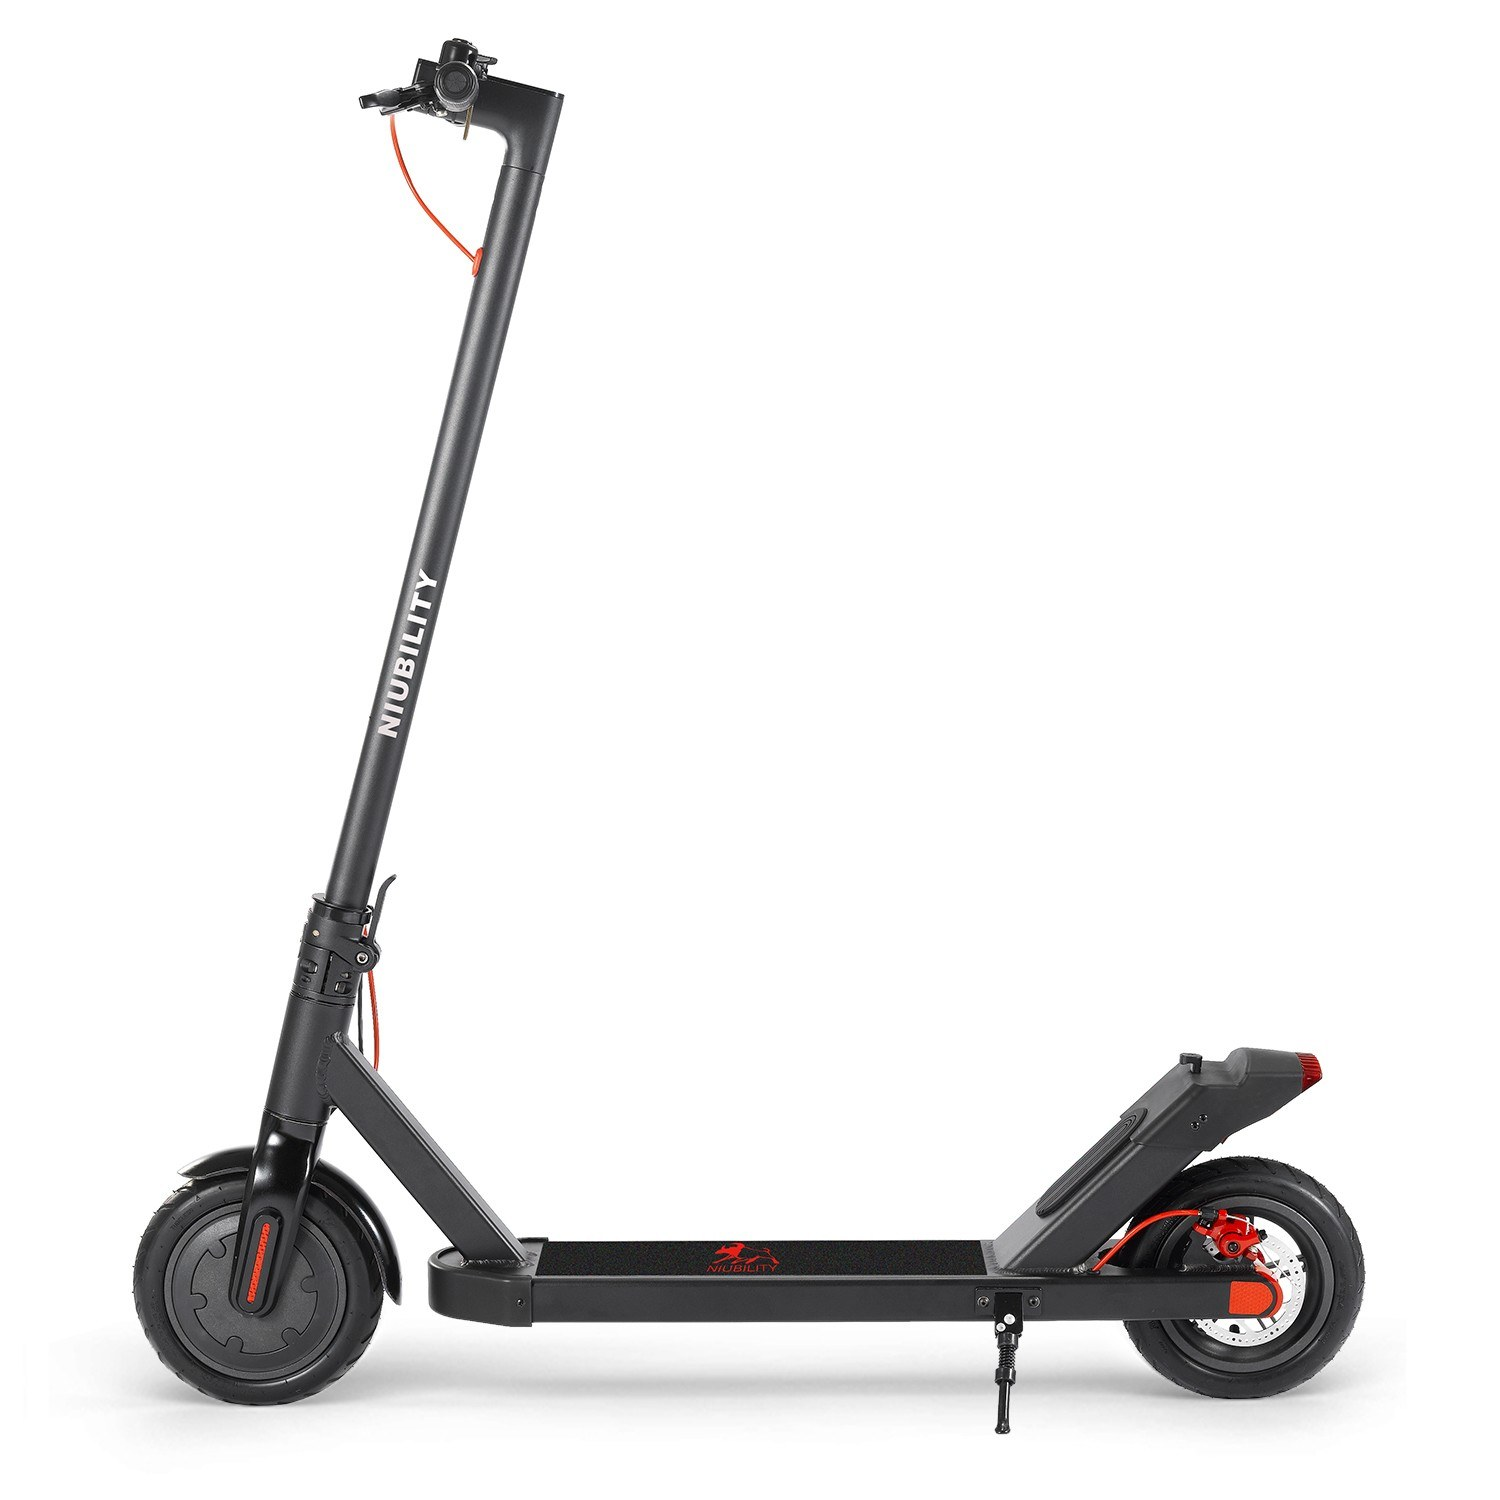 Tomtop - [EU Warehouse] $130 OFF Niubility N1 8.5 Inch Two Wheel Folding Electric Scooter, $219.99 (Inclusive of VAT)